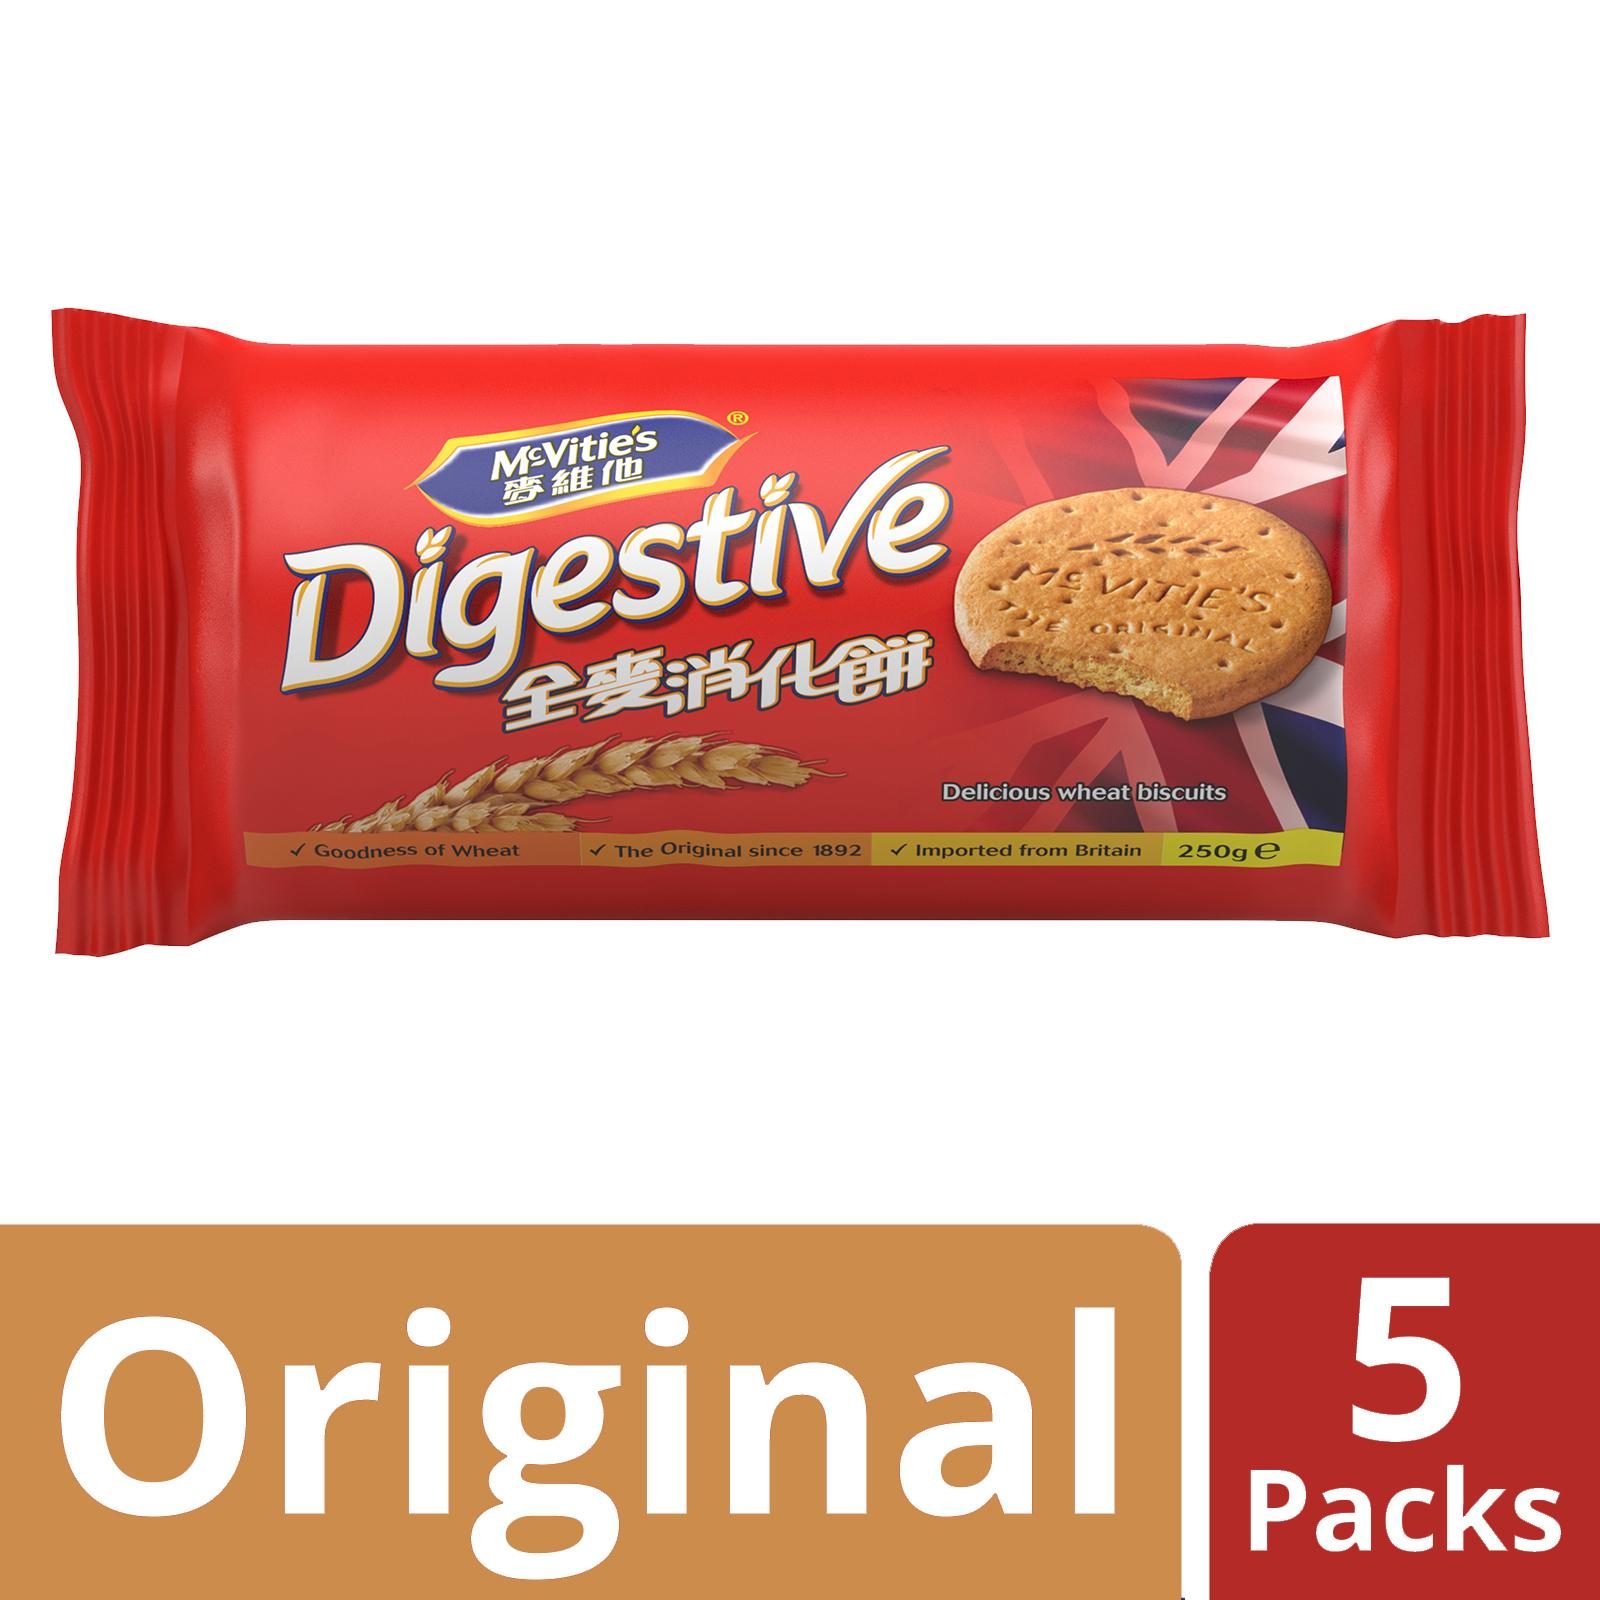 Mcvities Digestive Wheat Biscuits, Original, Pack Of 5, 250g Each By Mondelez Official Store.